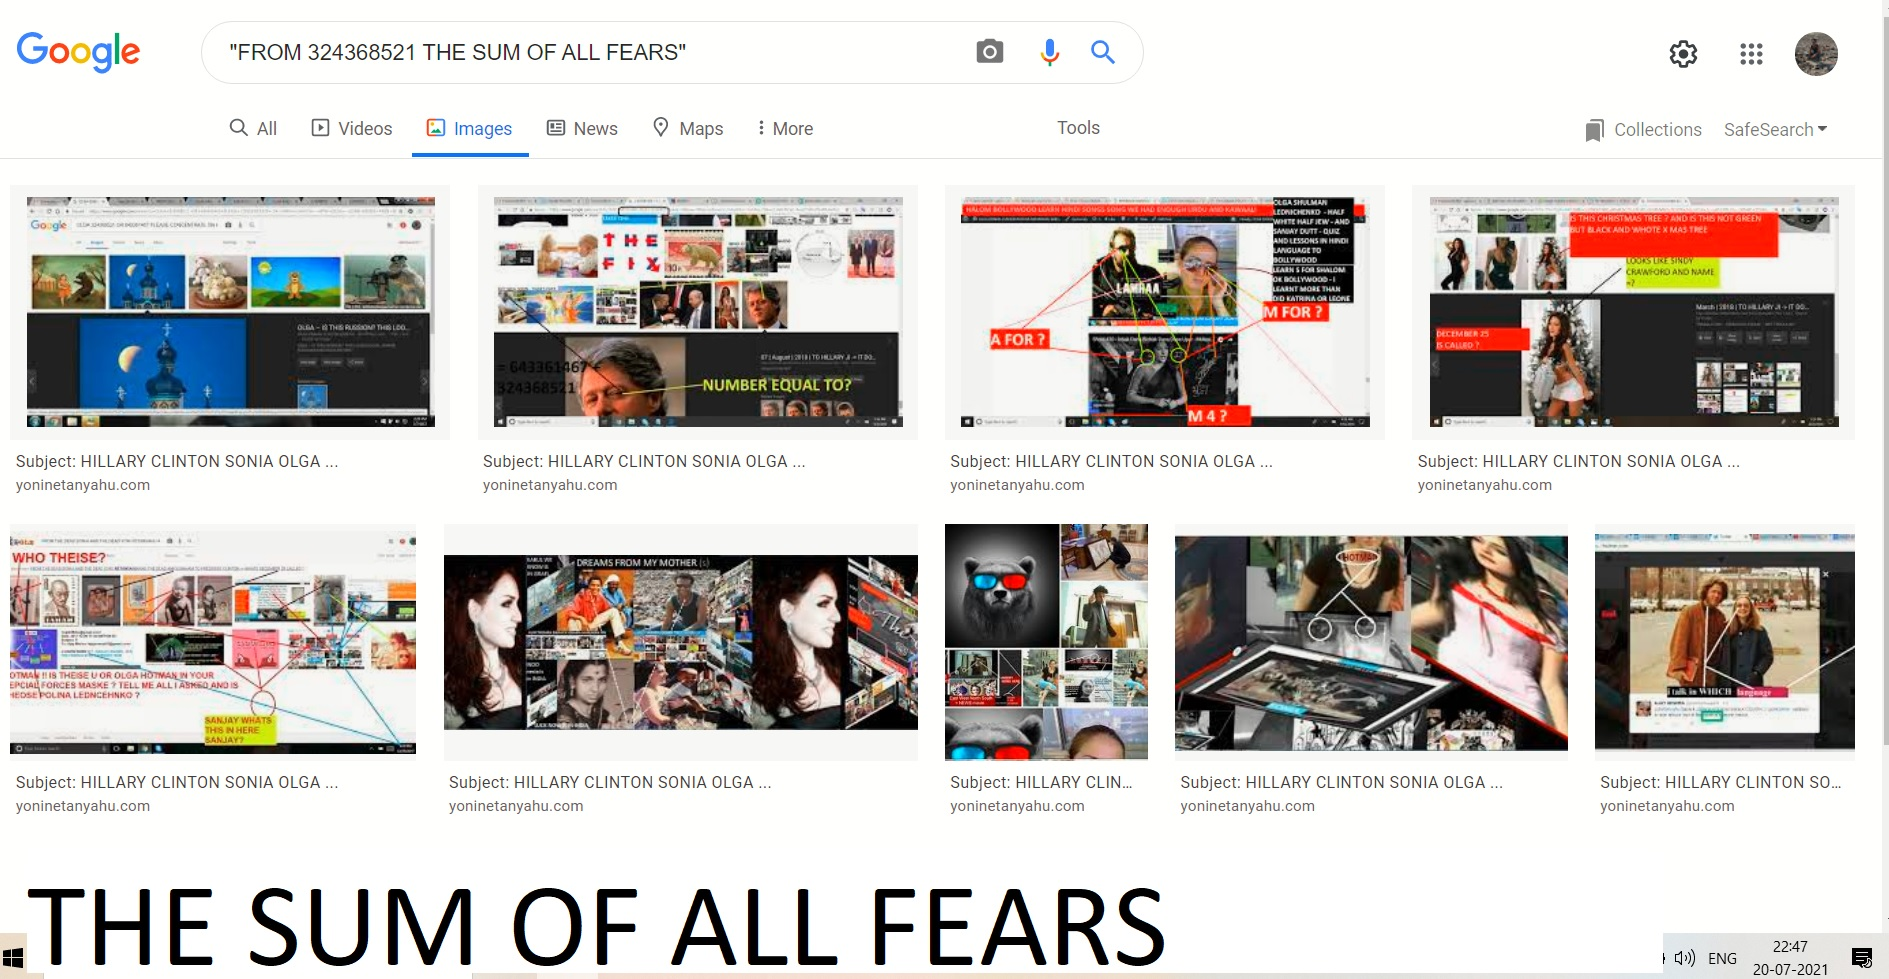 THE SUM OF ALL FEARS